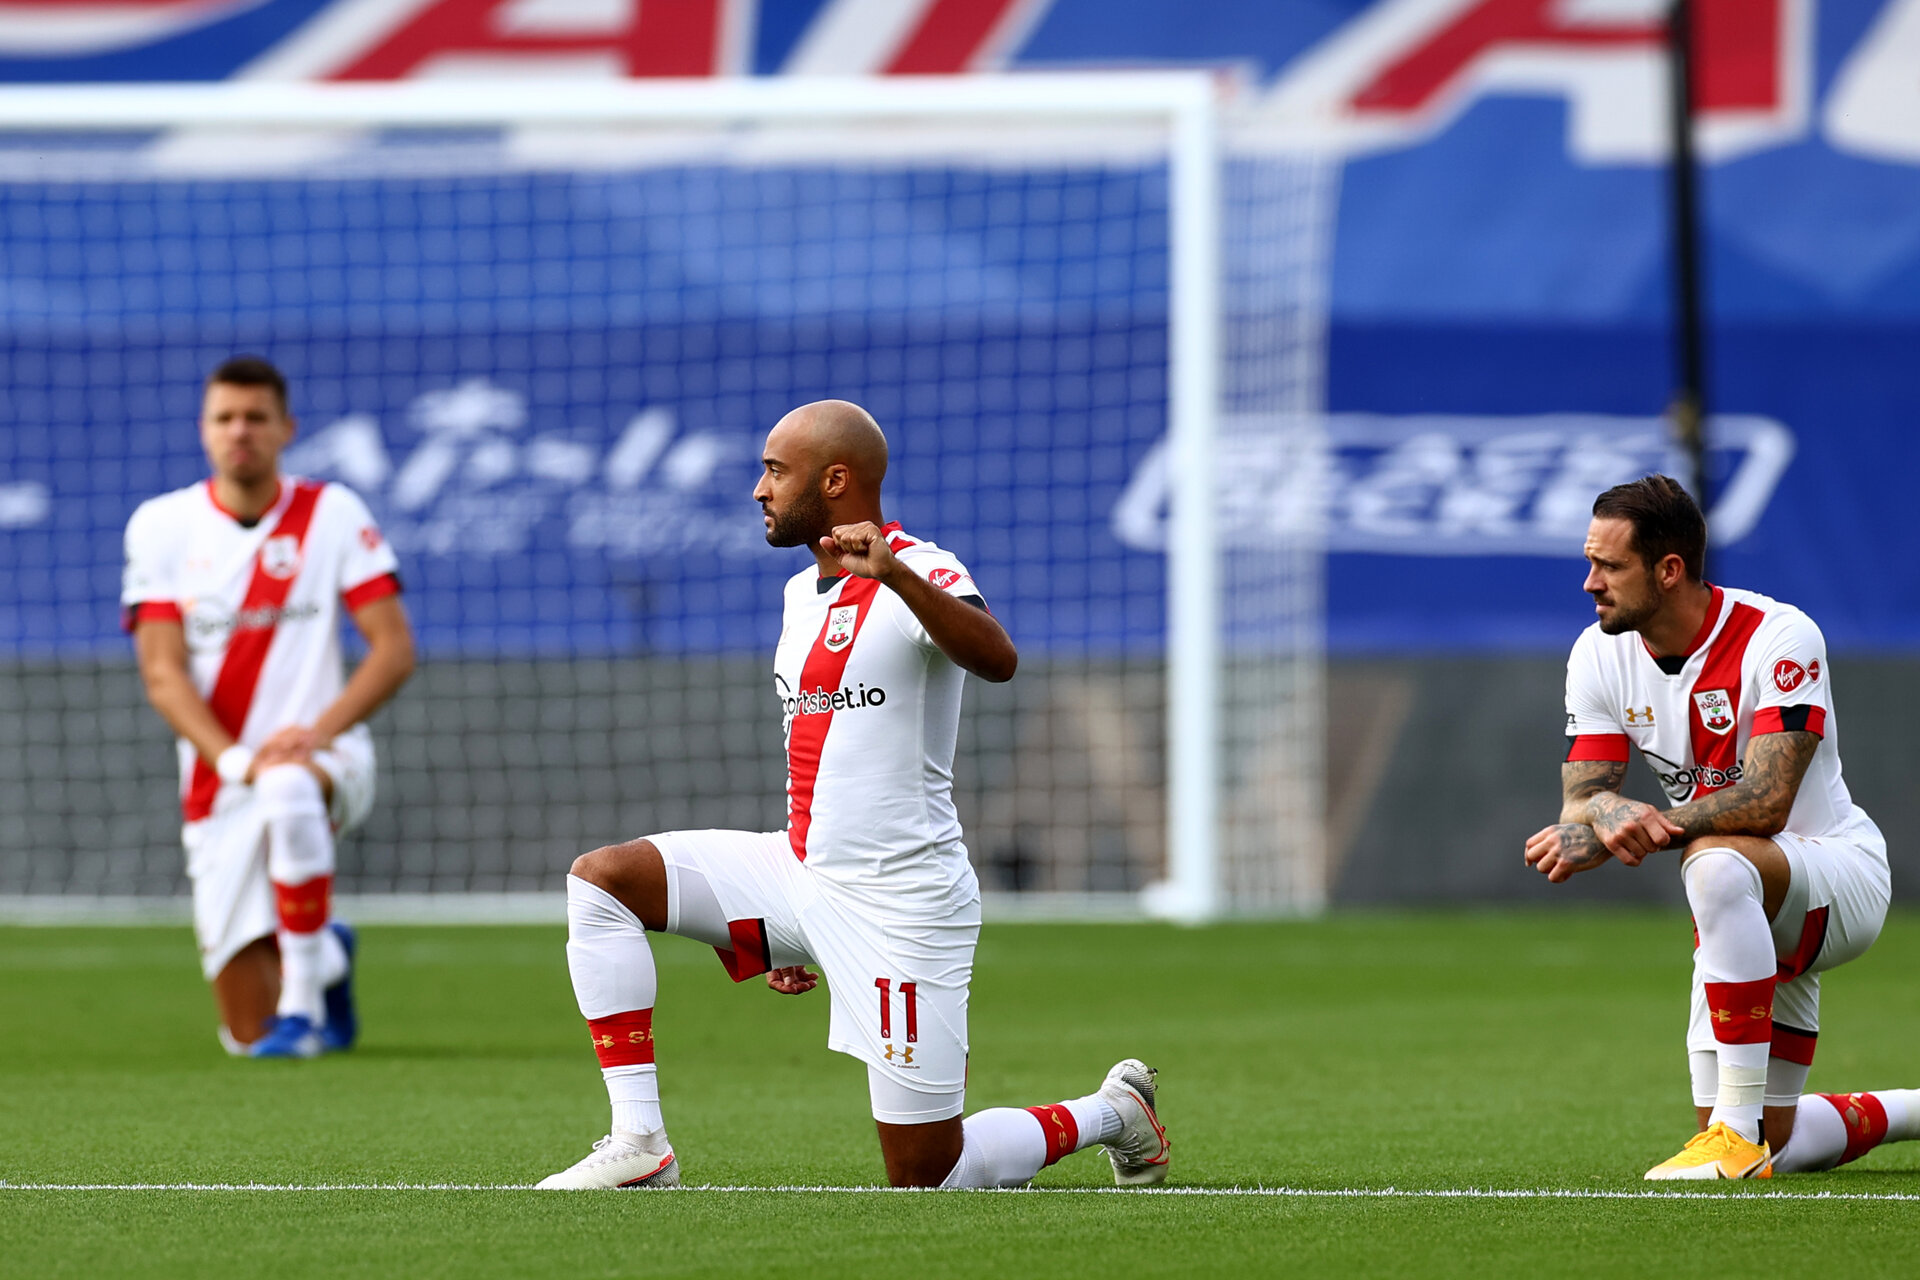 LONDON, ENGLAND - SEPTEMBER 12: Nathan Redmond (center) of Southampton taking a knee in support of black lives matter movment ahead of the Premier League match between Crystal Palace and Southampton at Selhurst Park on September 12, 2020 in London, United Kingdom. (Photo by Matt Watson/Southampton FC via Getty Images)